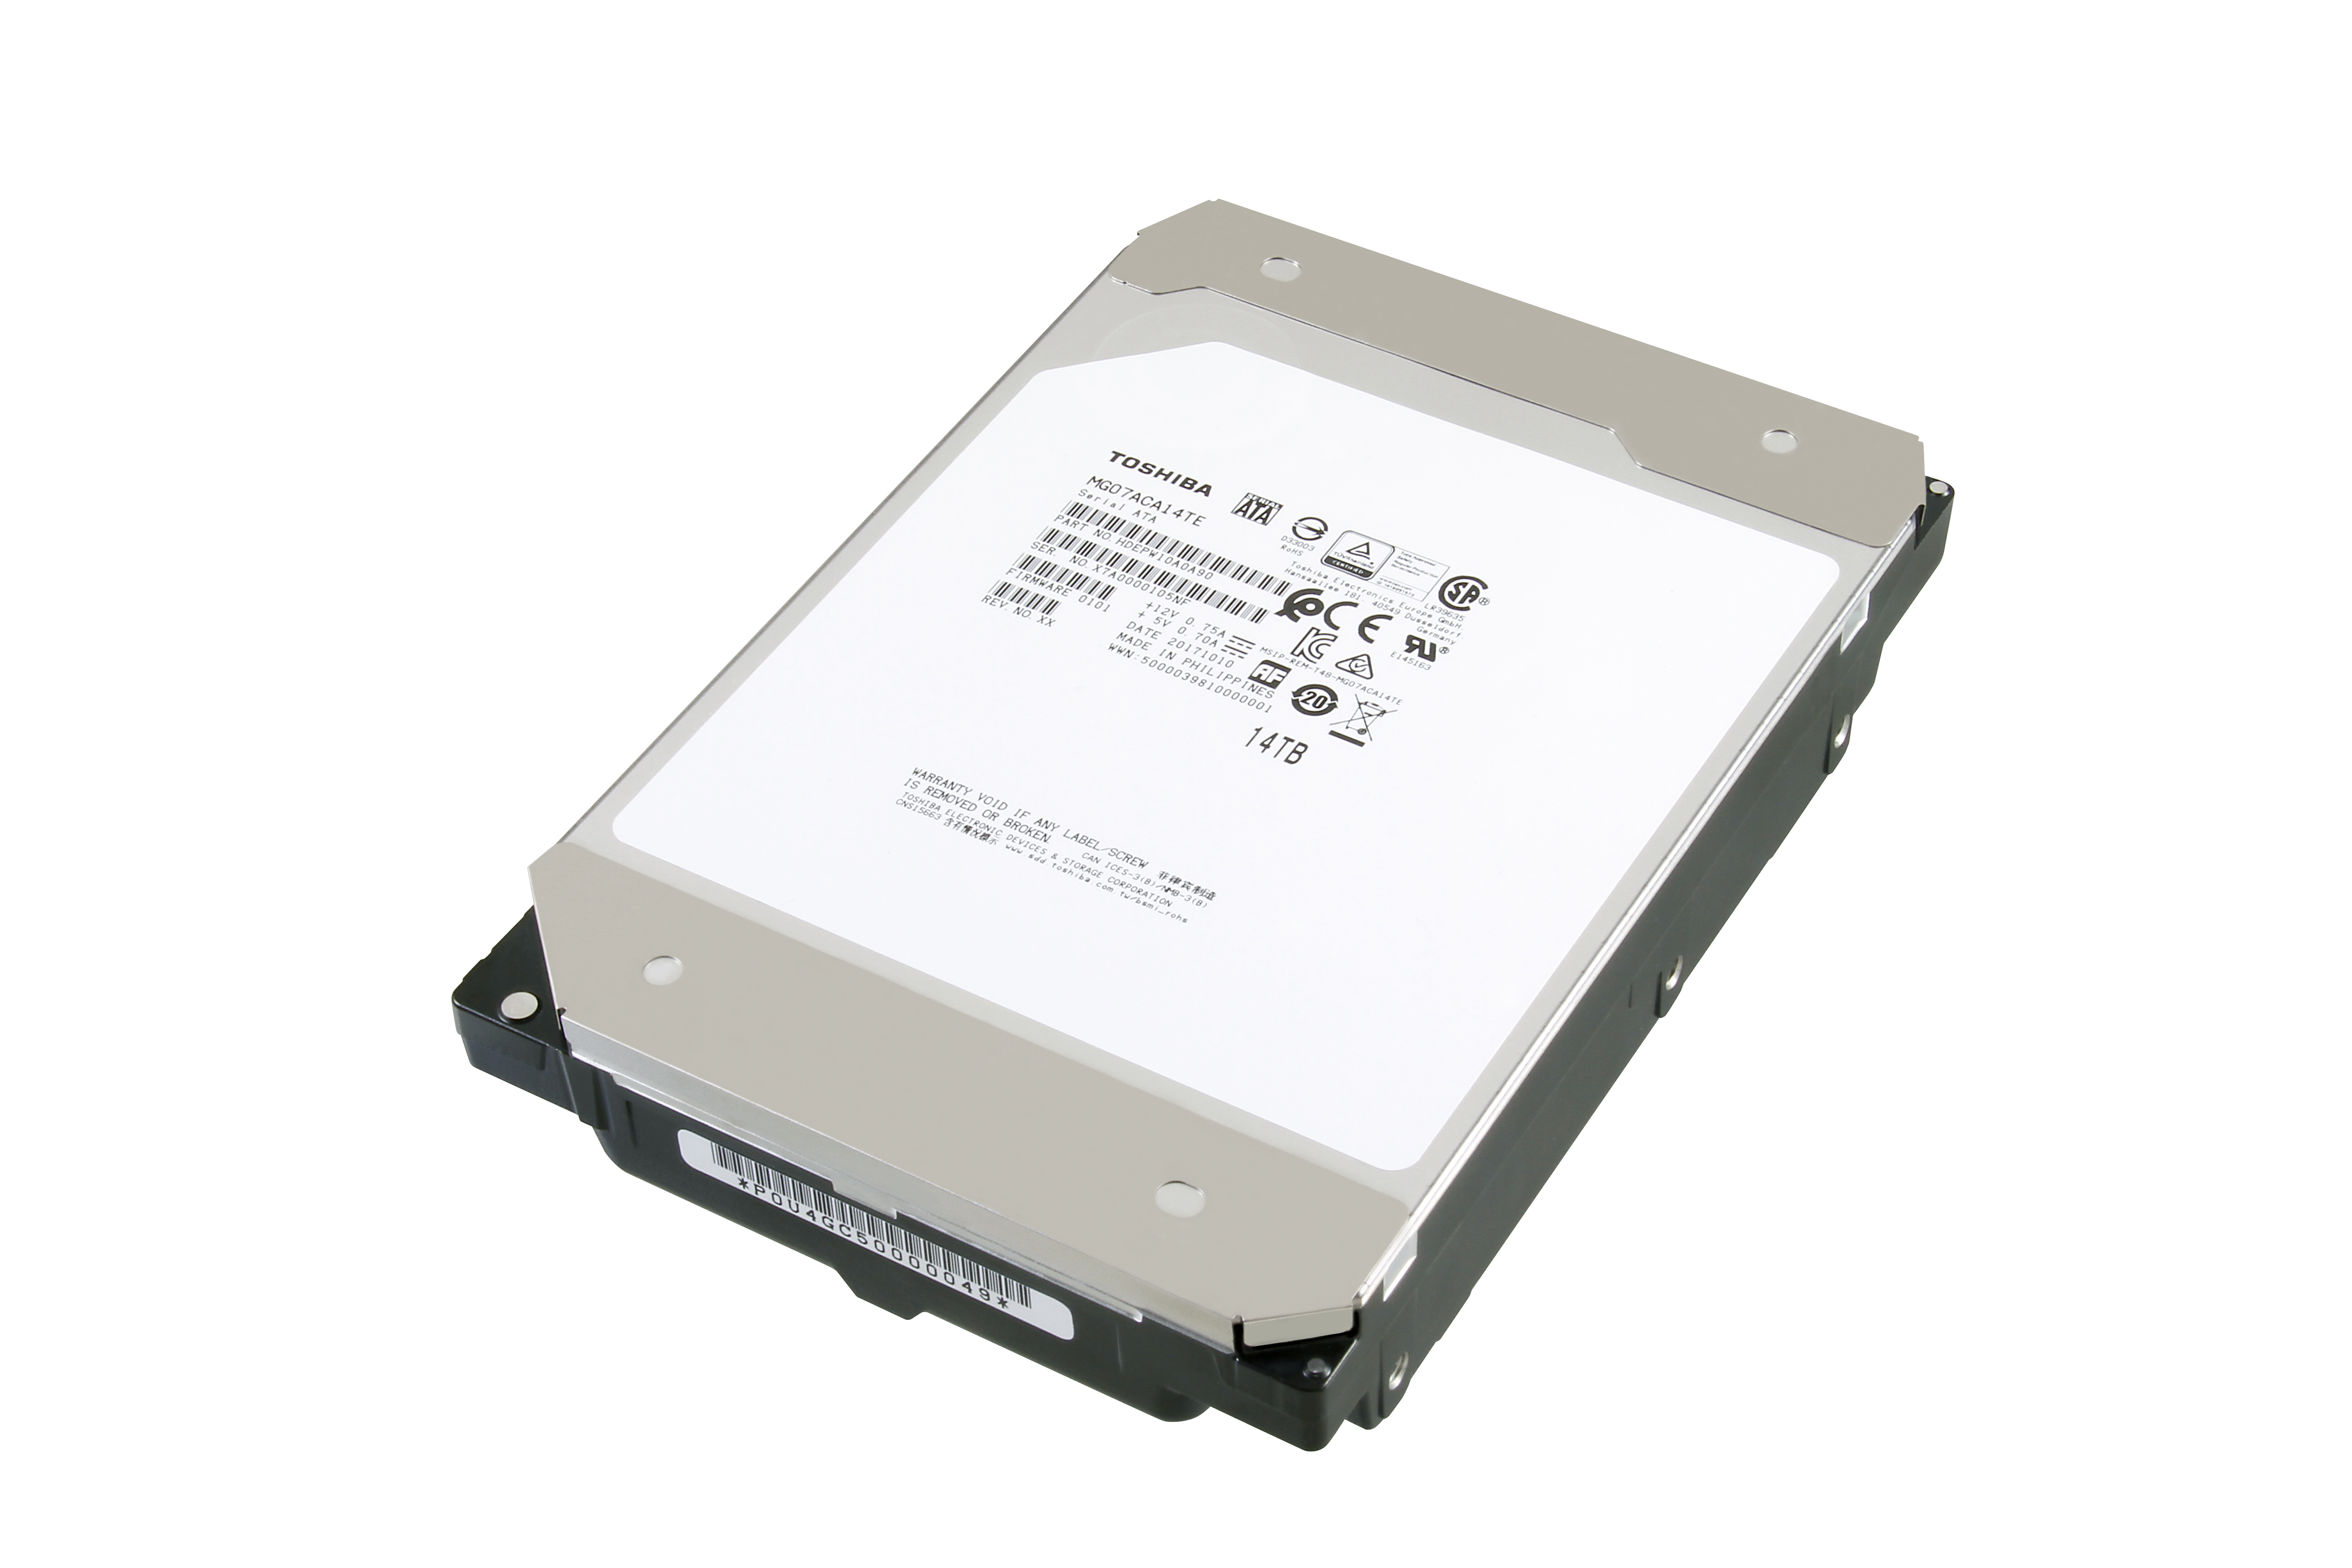 Toshiba Launches World's First 14TB HDD with Conventional Magnetic Recording